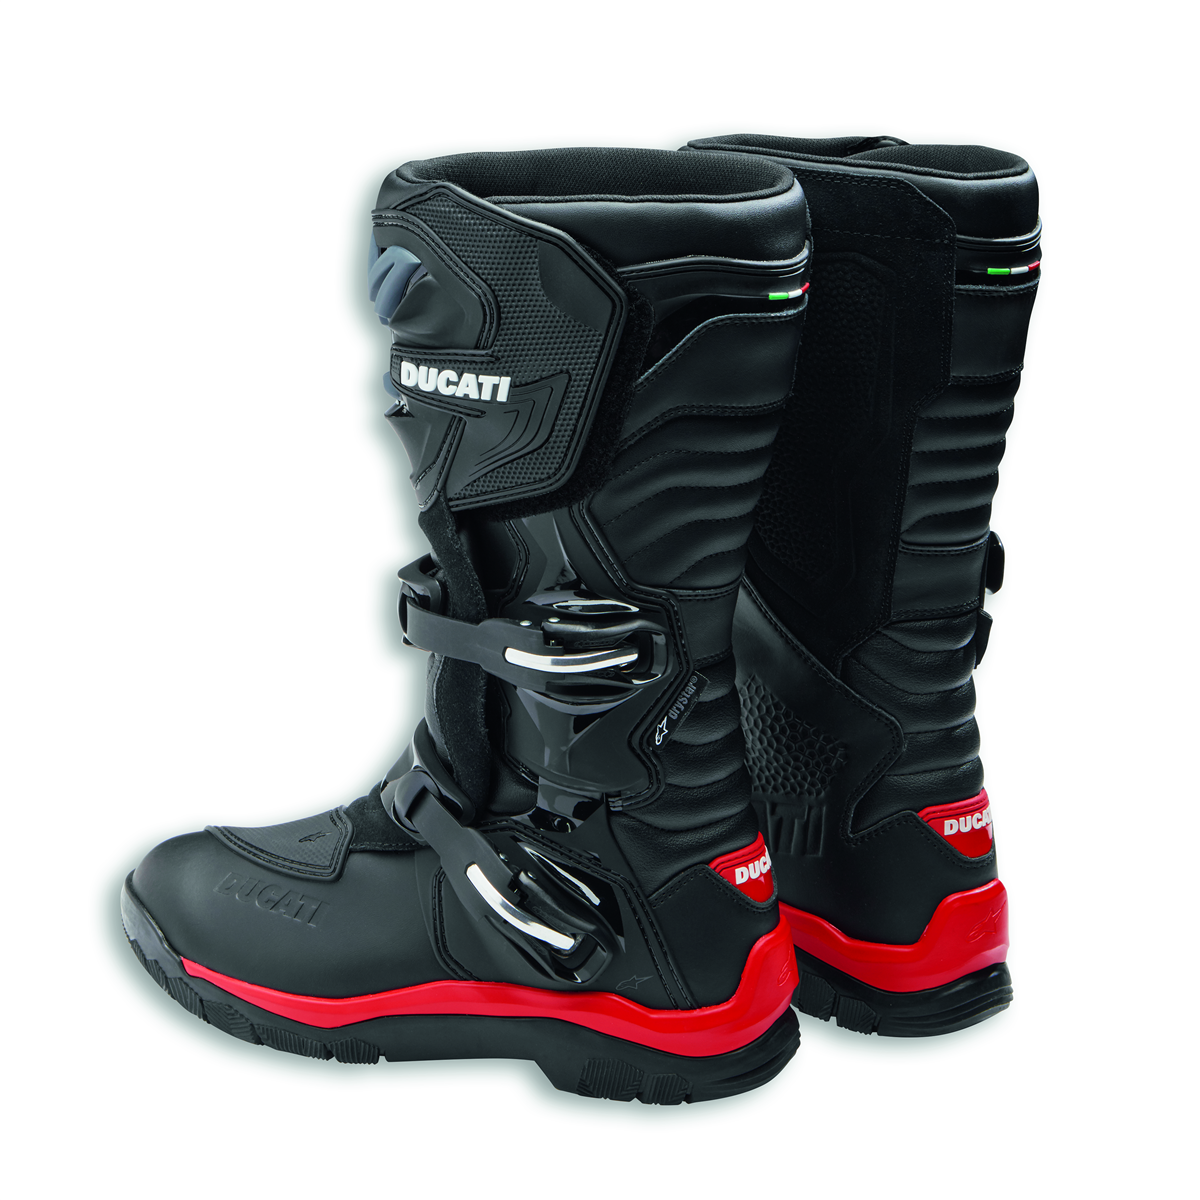 Atacama WP C1 - Touring-Adventure Boots